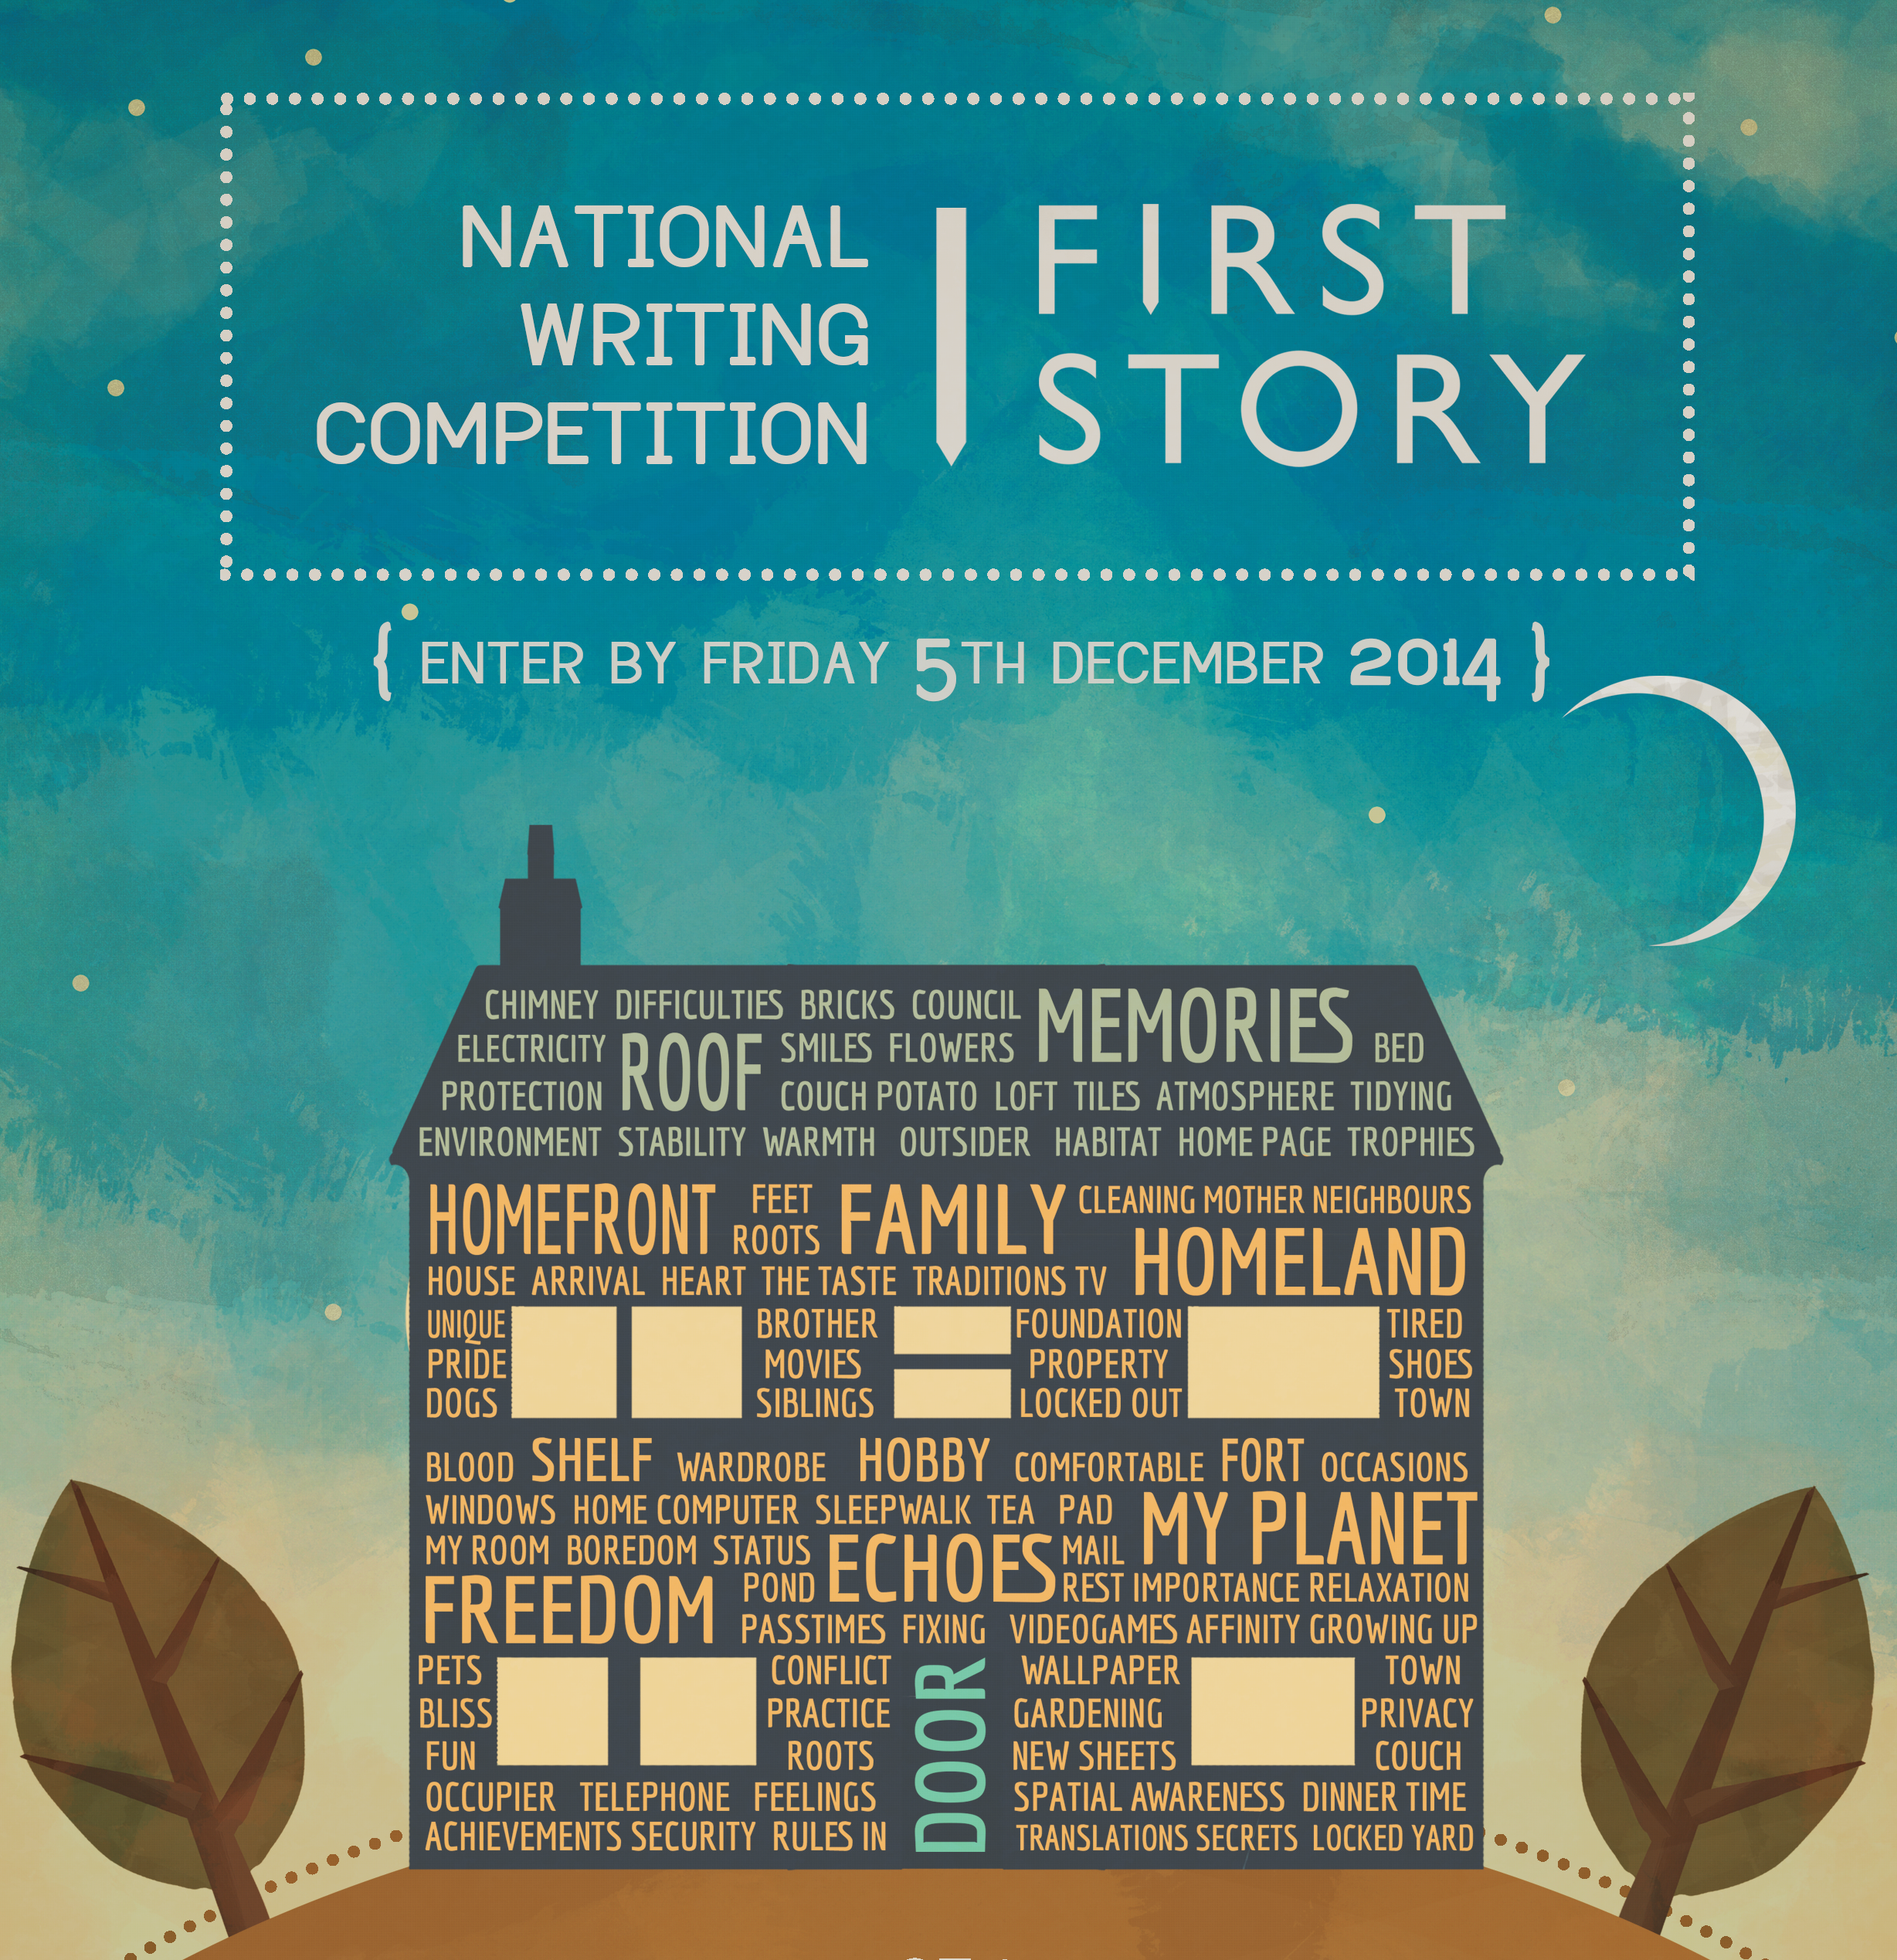 022 Firststory Homecompposter A4final Essay Example Contests Imposing 2014 Maryknoll Contest Winners Full